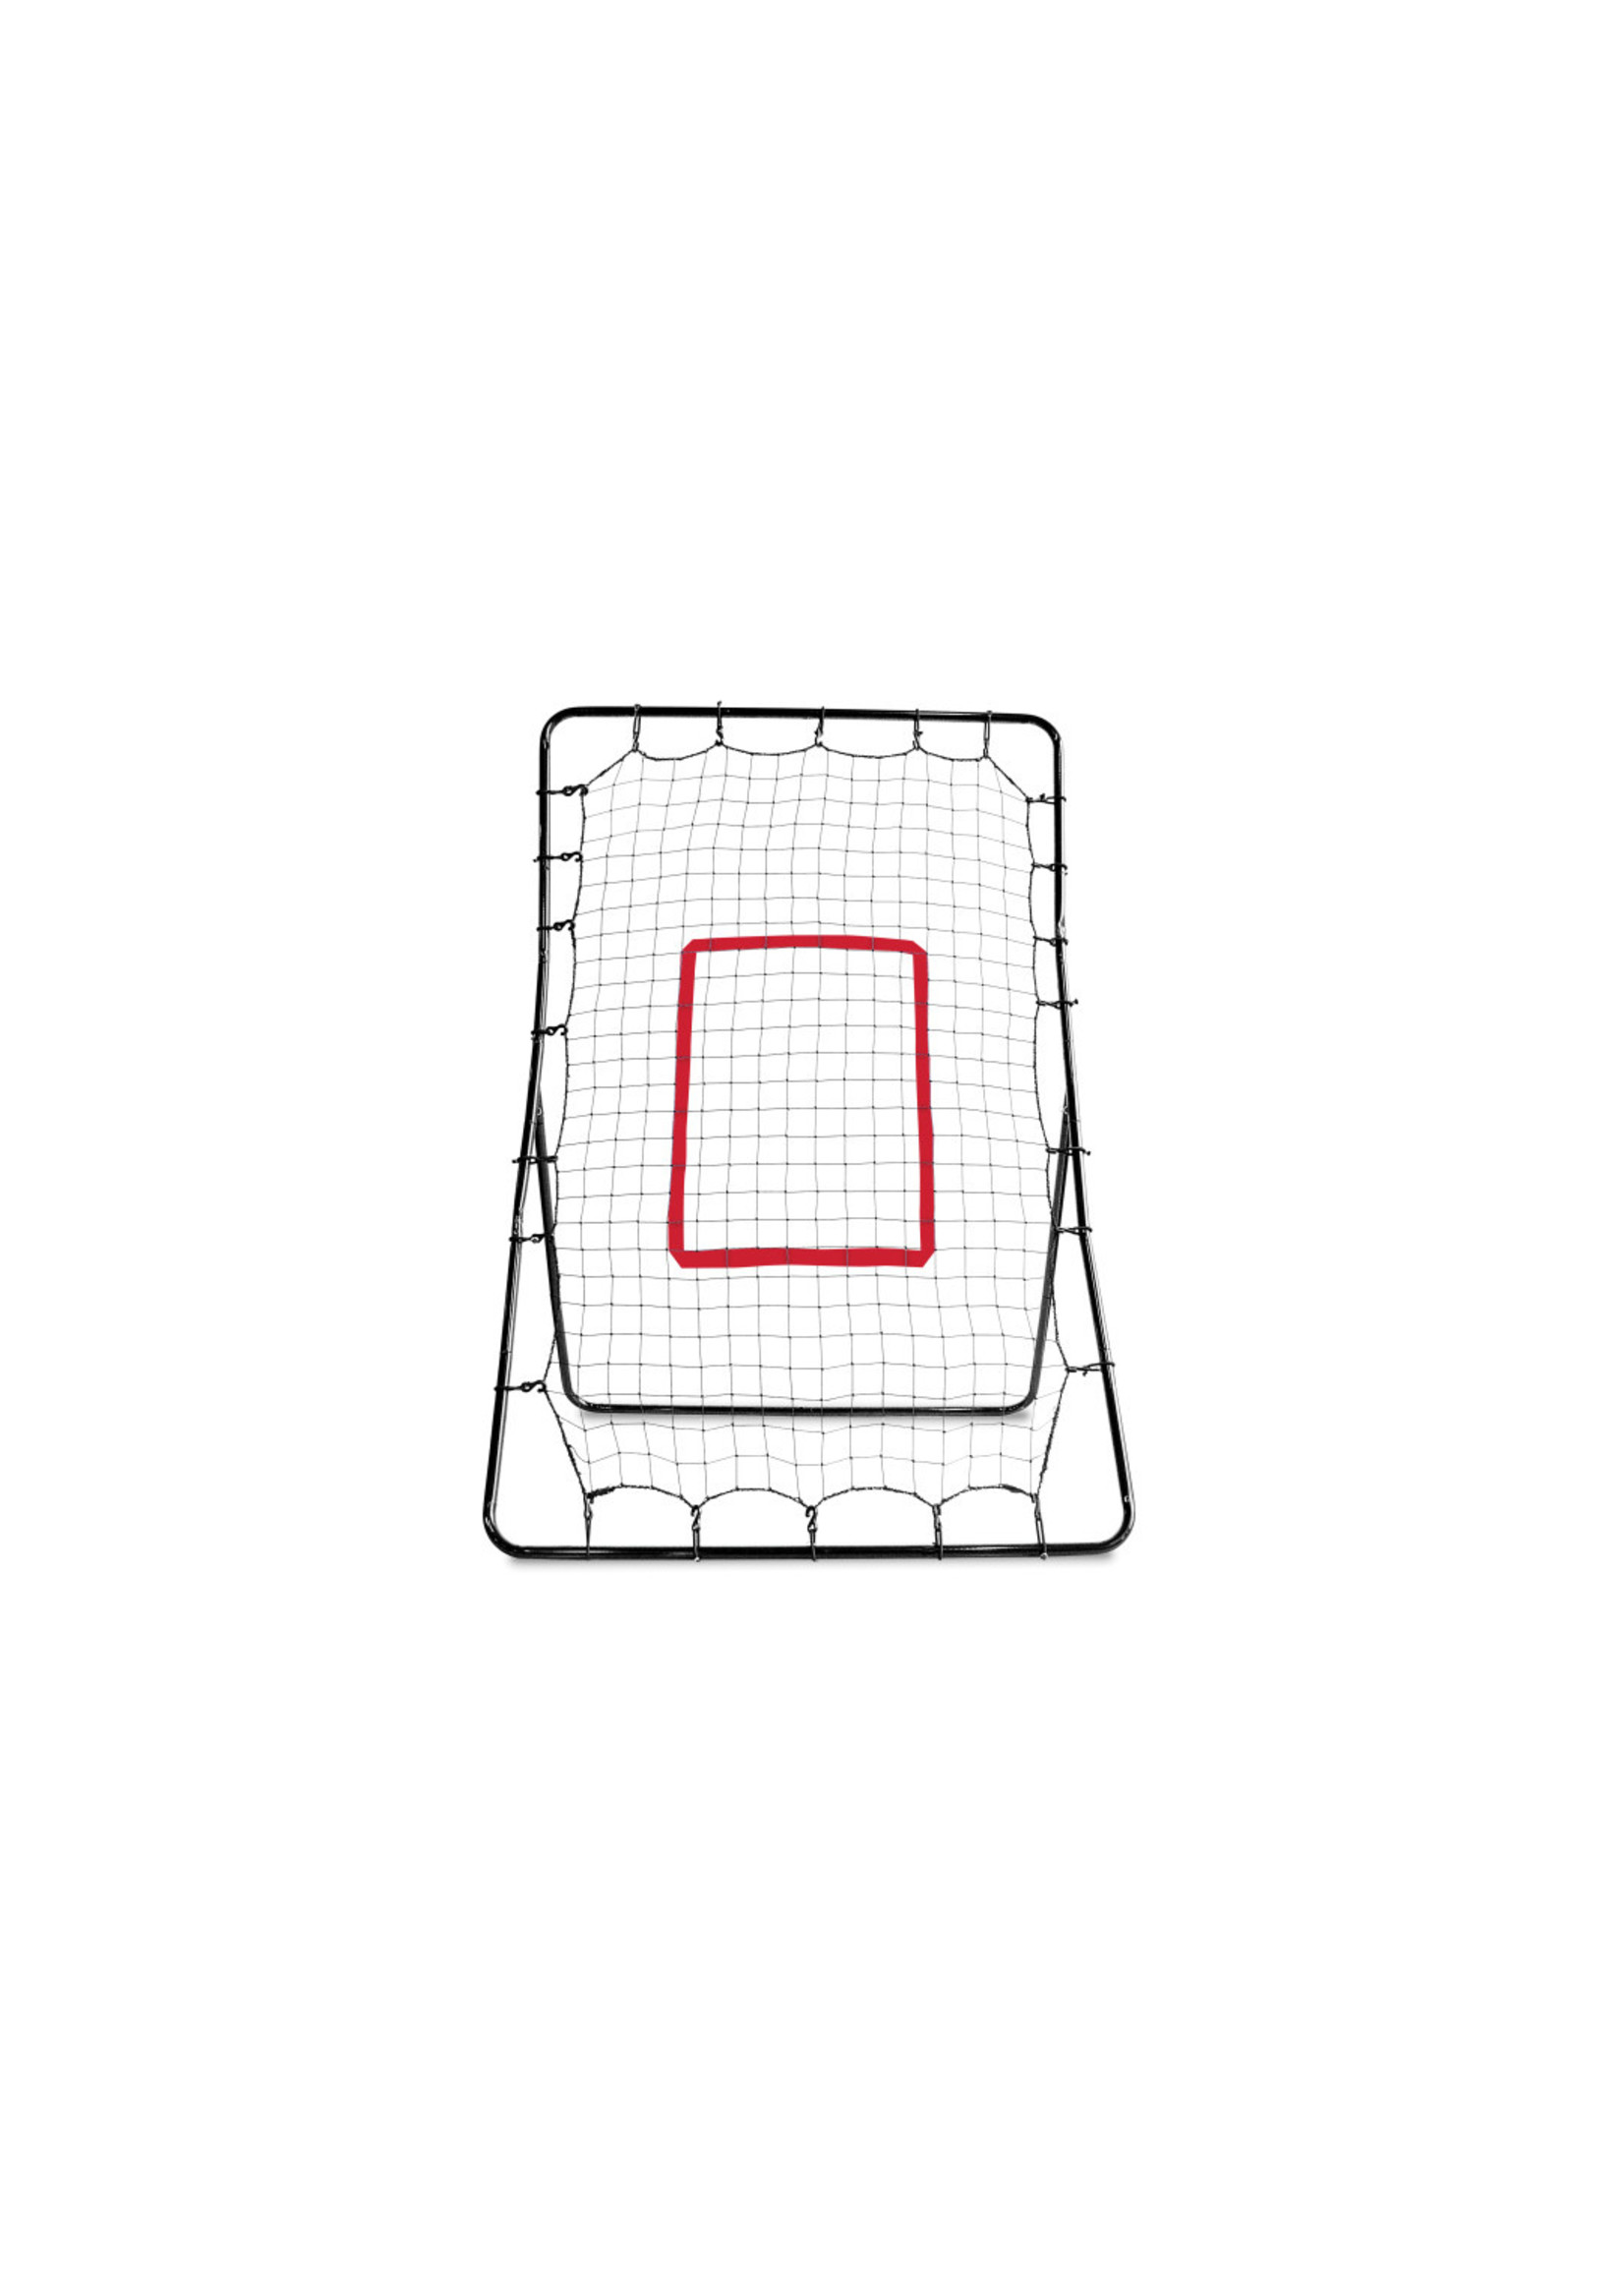 SKLZ PITCHBACK YOUTH PITCHING ANDE FIELDING TRAINER